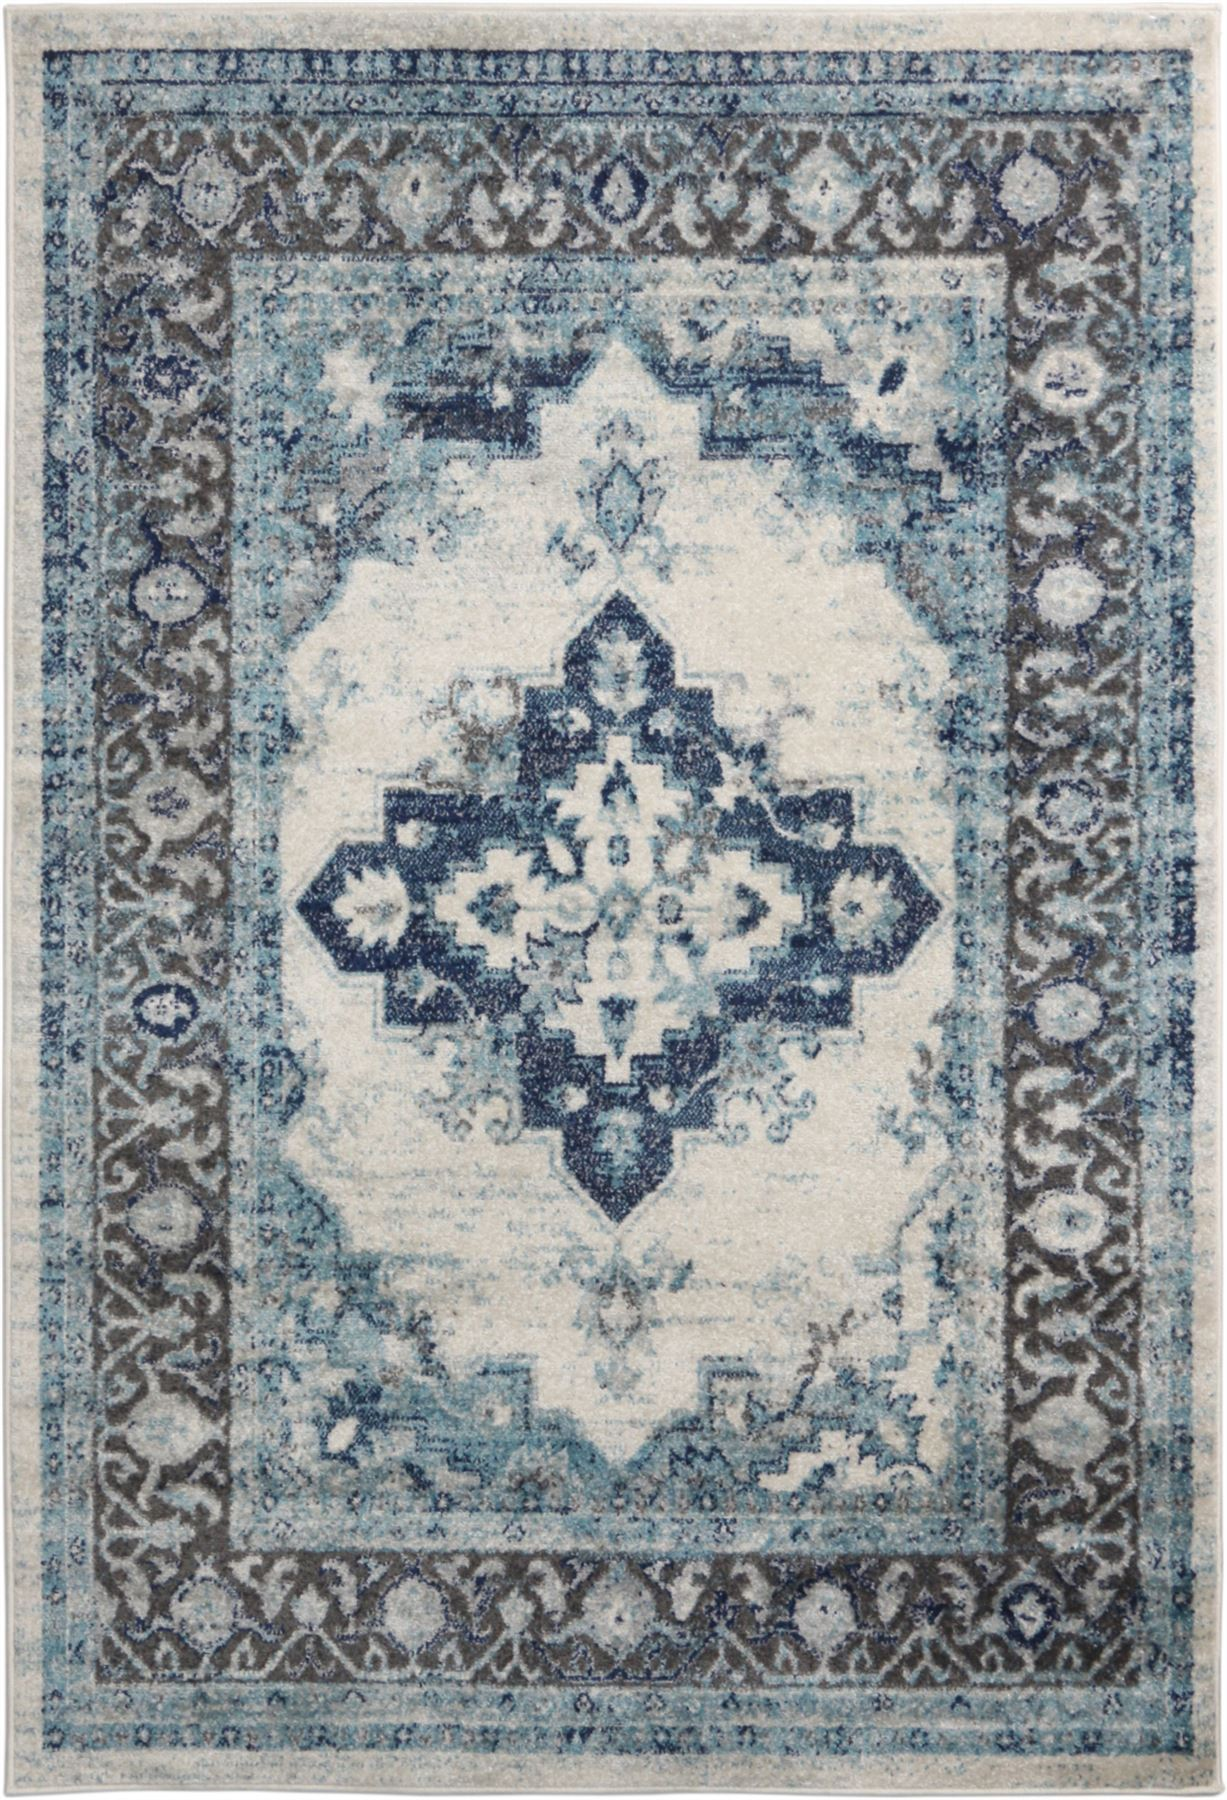 Large-Quality-Traditional-Area-Rug-Assorted-Persian-Floral-Designs-Carpet-Runner thumbnail 94